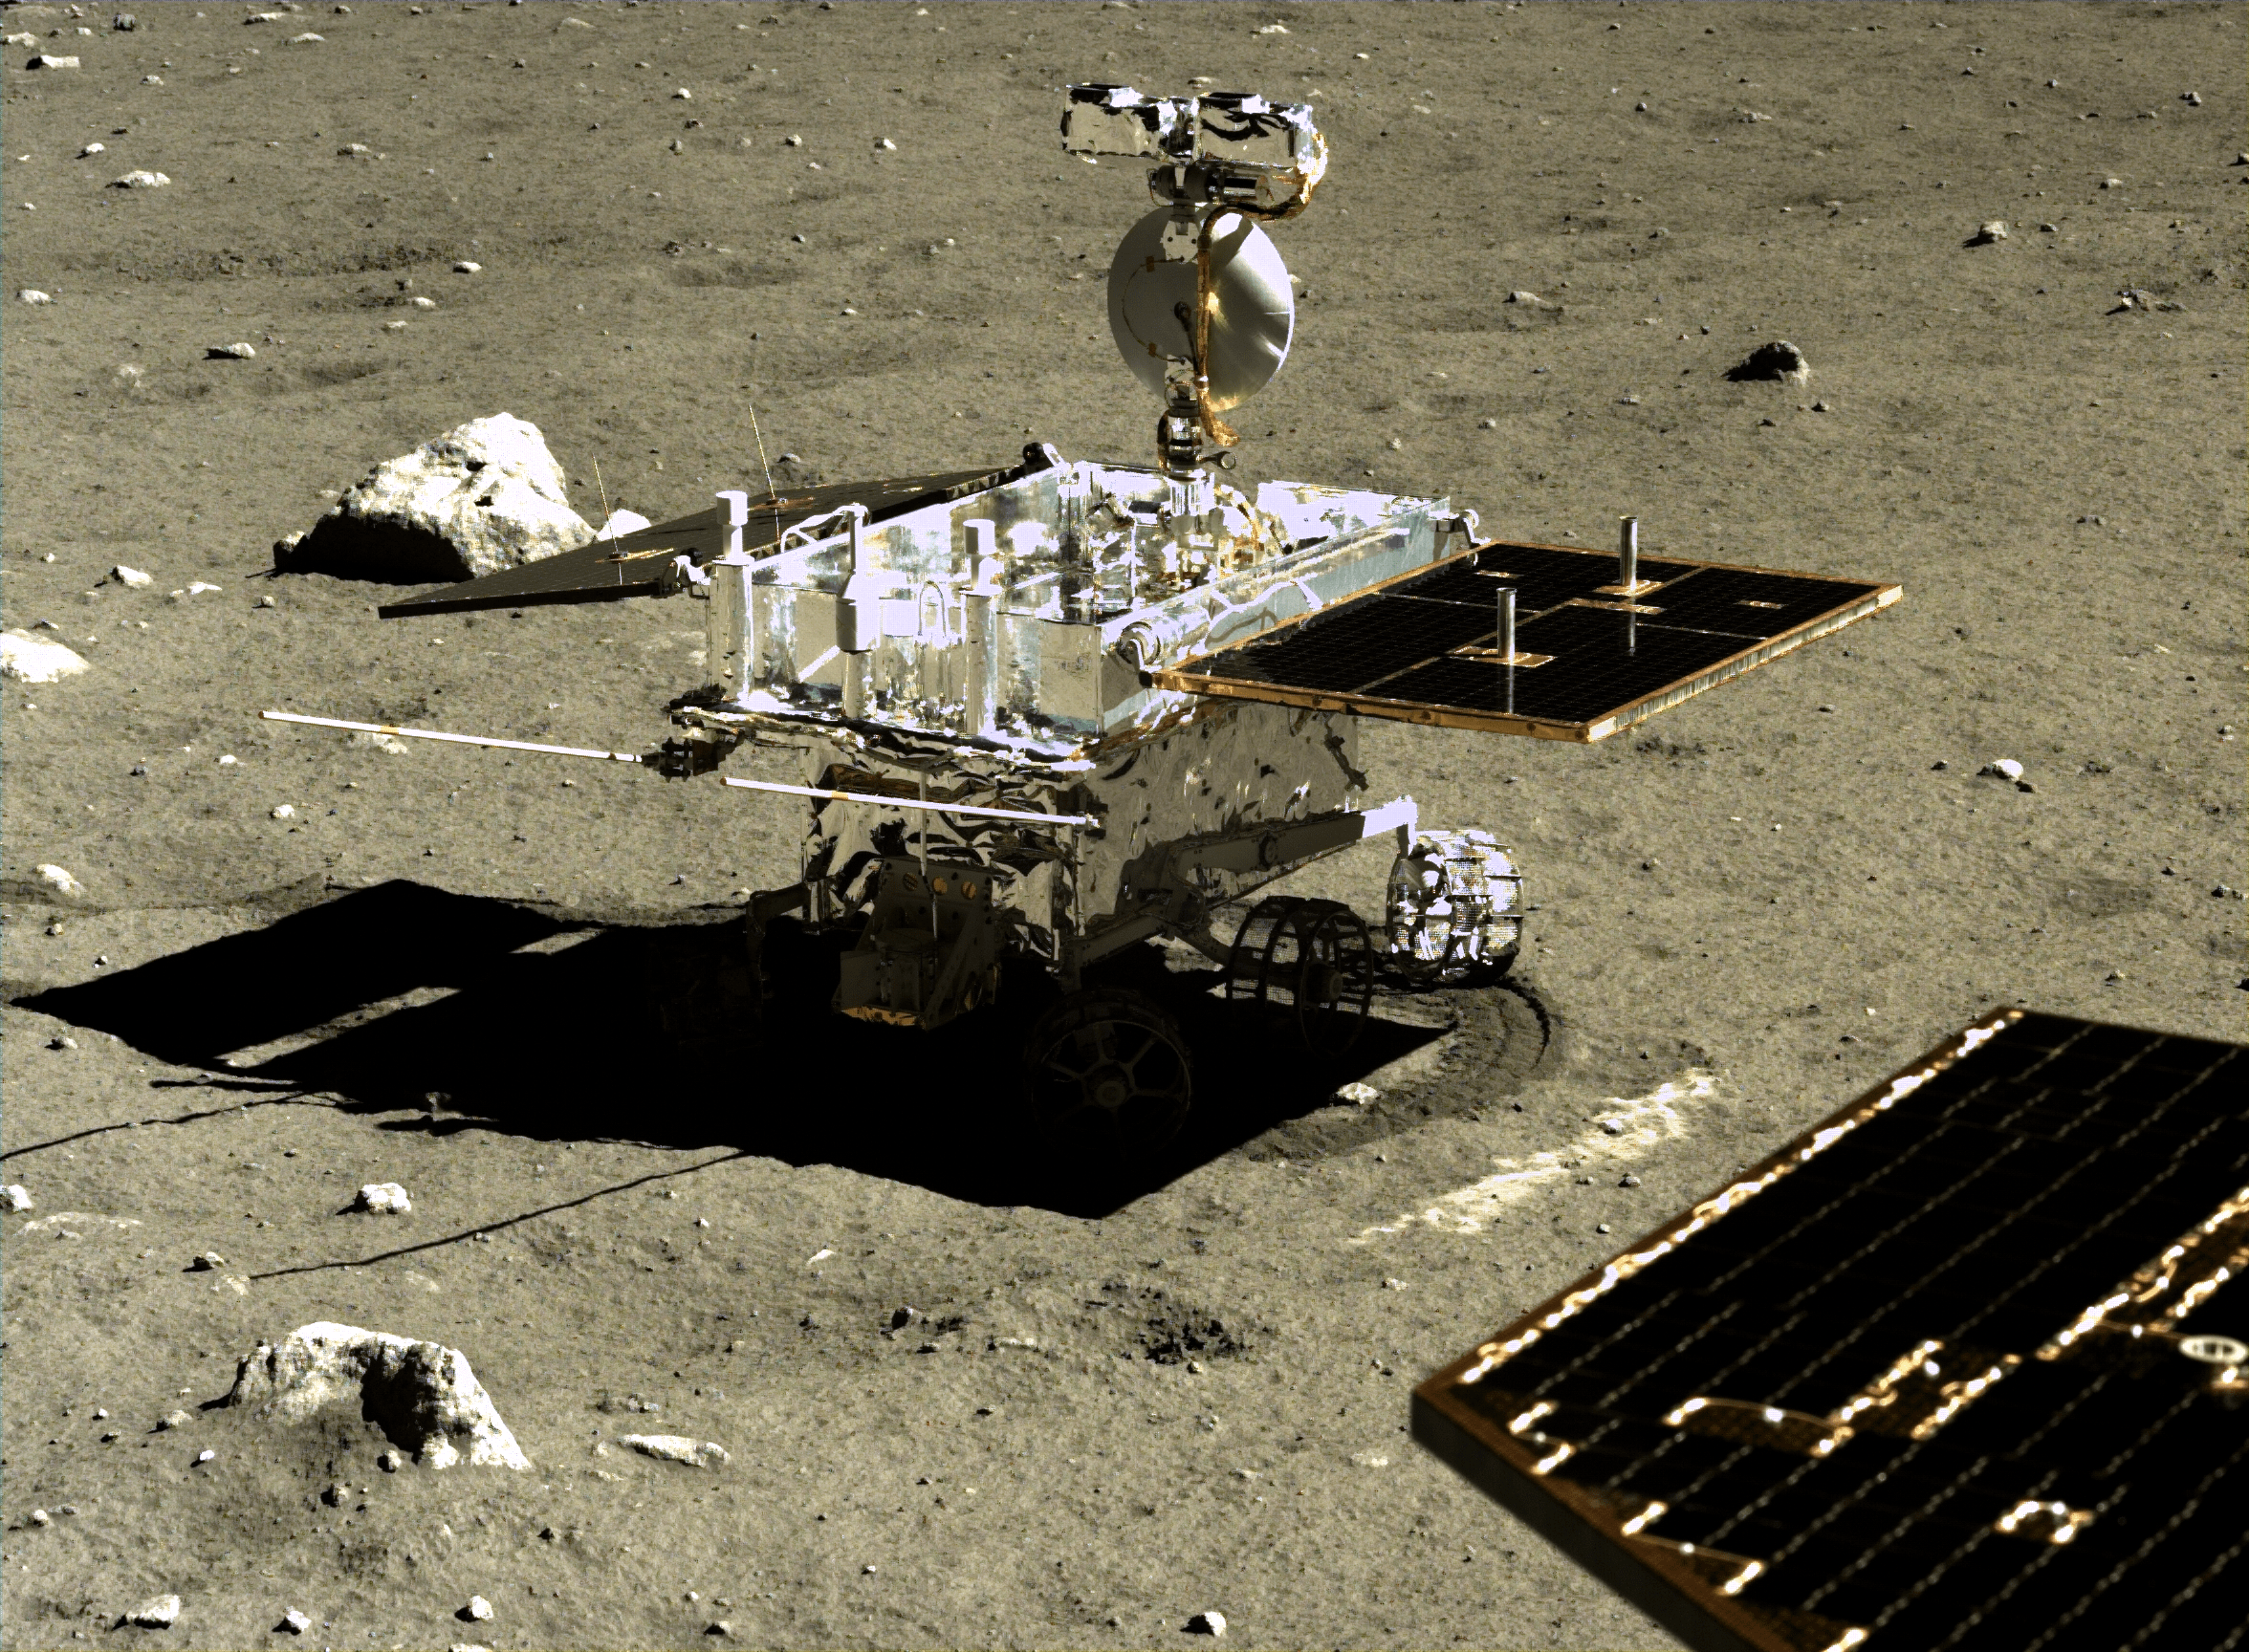 This image shows a lot of detail of the Yutu rover. Image: Chinese Academy of Sciences/China National Space Administration/The Science and Application Centre for Moon and Deep Space Exploration/Emily Lakdawalla.